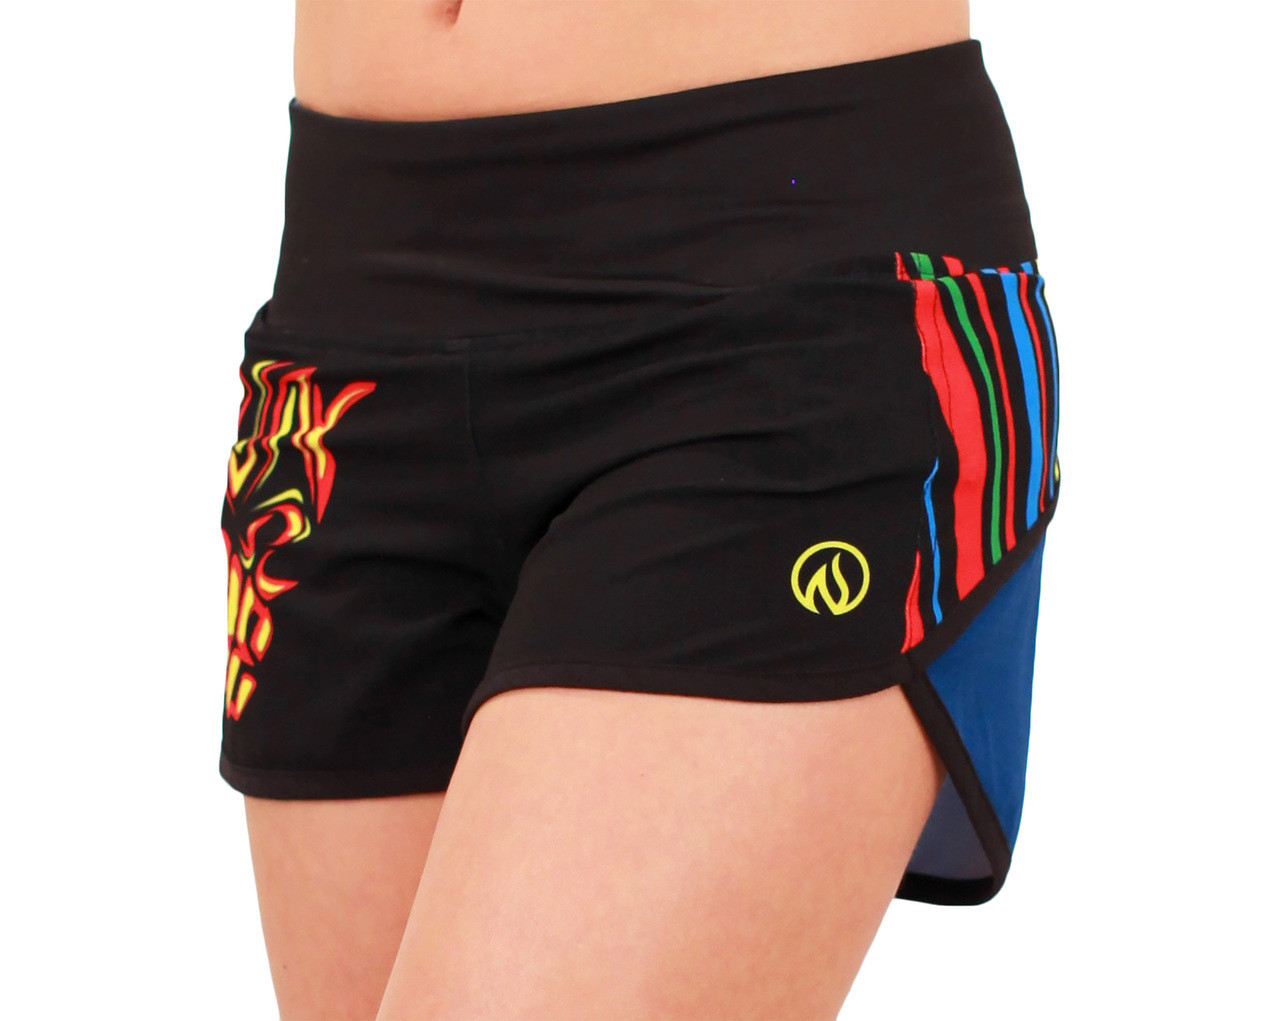 INKnBURN Women's Run or Die Shorts Waistband Up